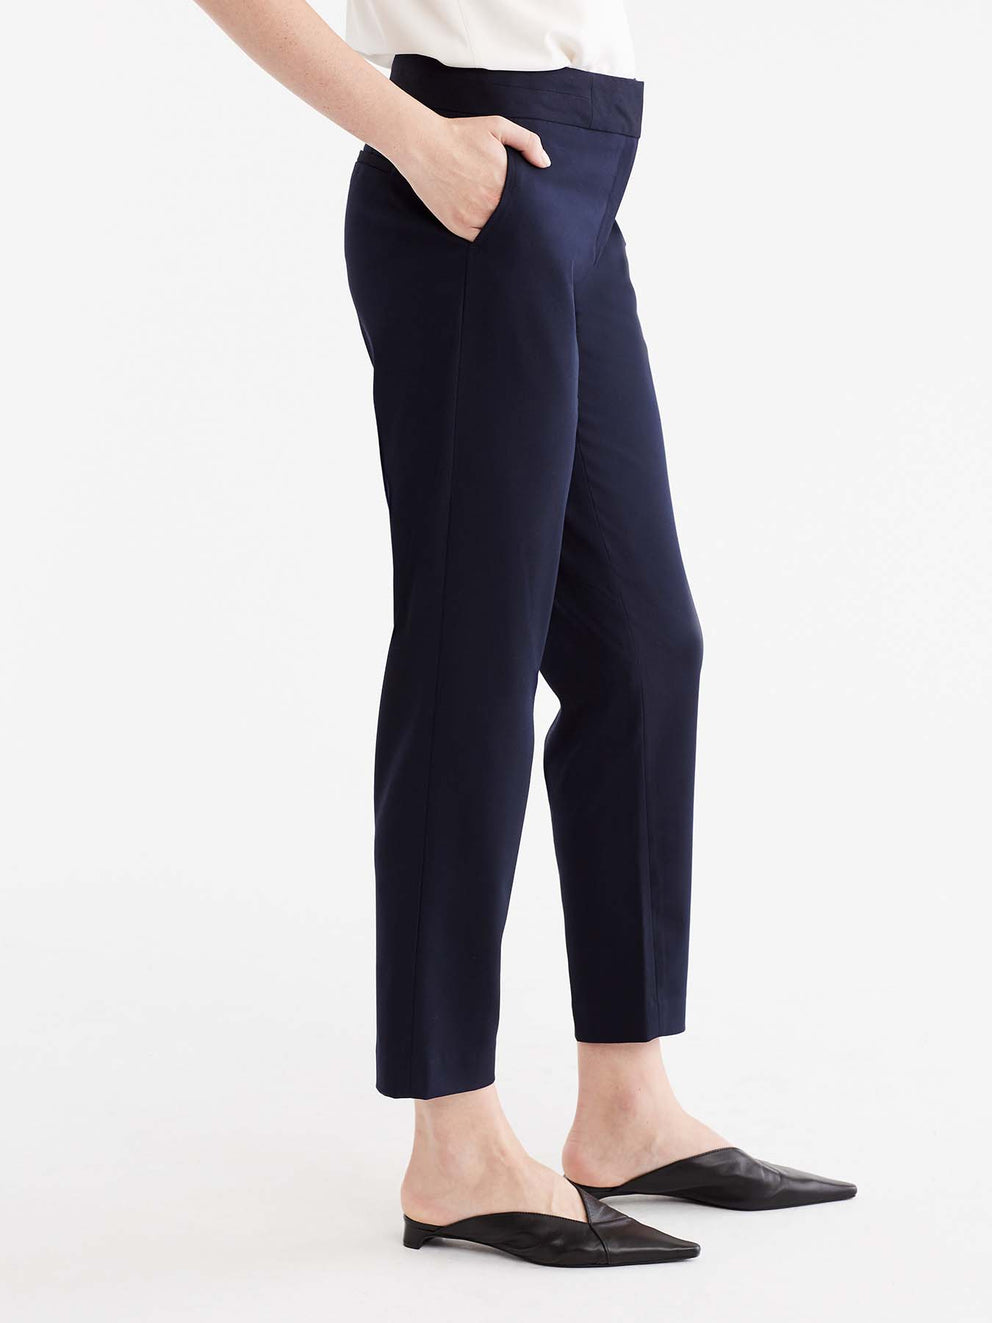 The Jones New York Washable Grace Ankle Pant in color Navy - Image Position 4